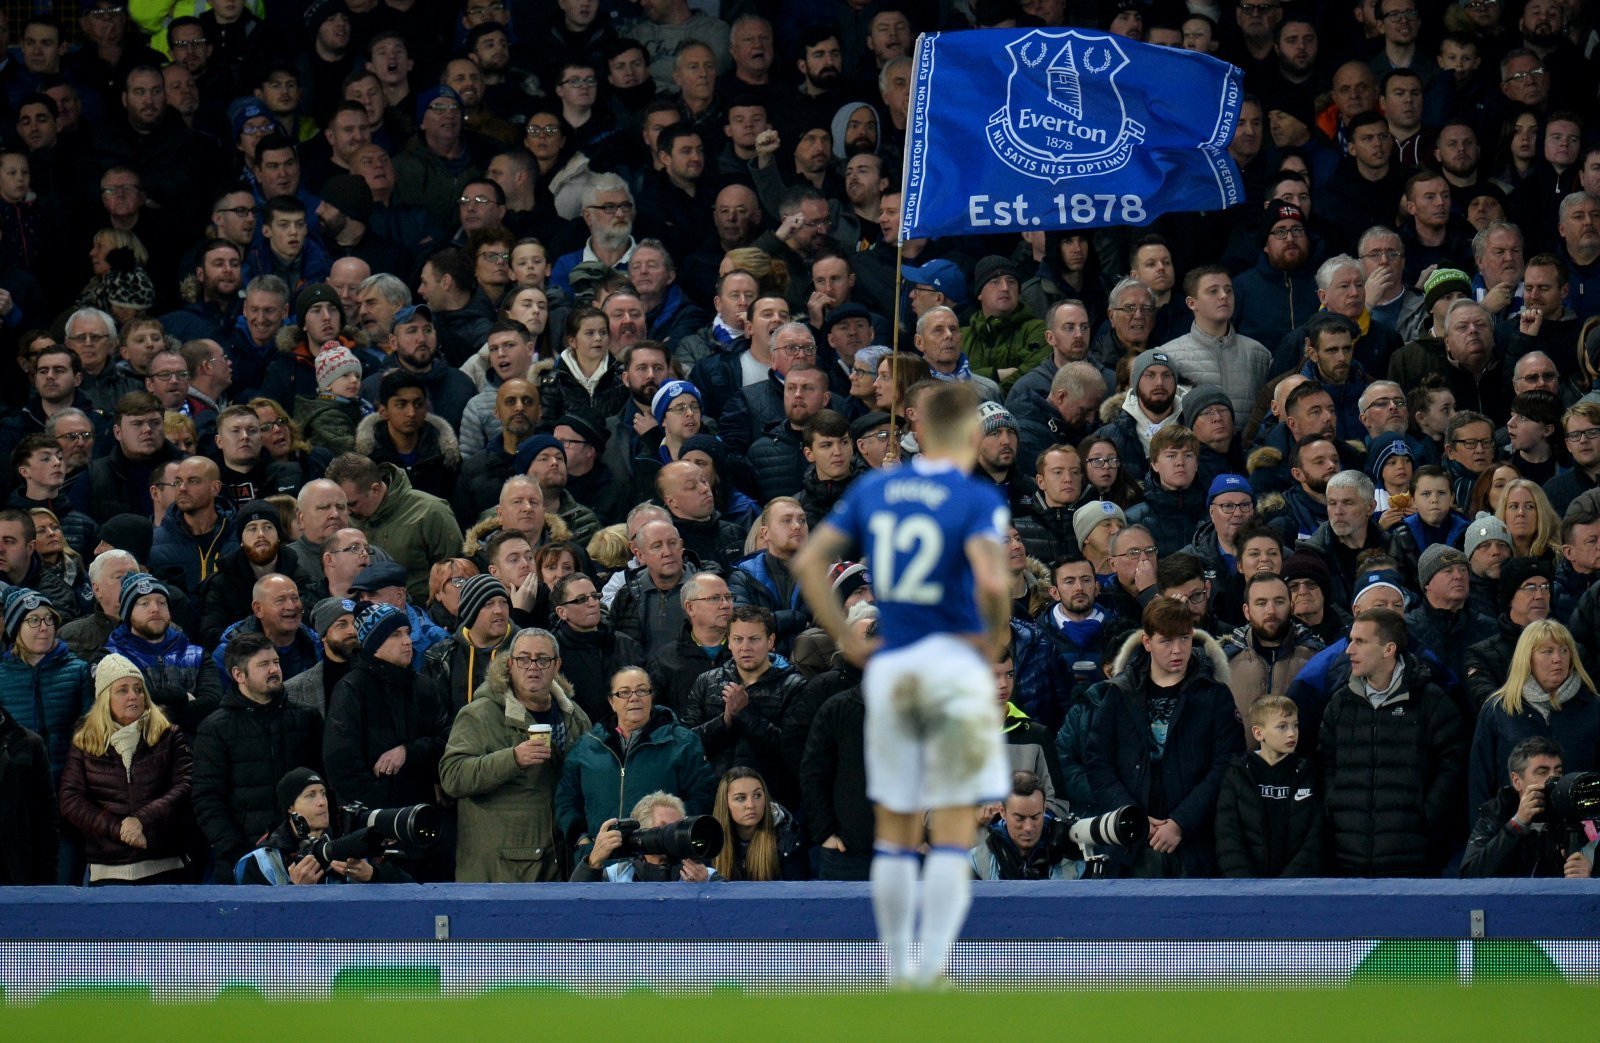 Everton: Fans mock Leicester City supporters' chant